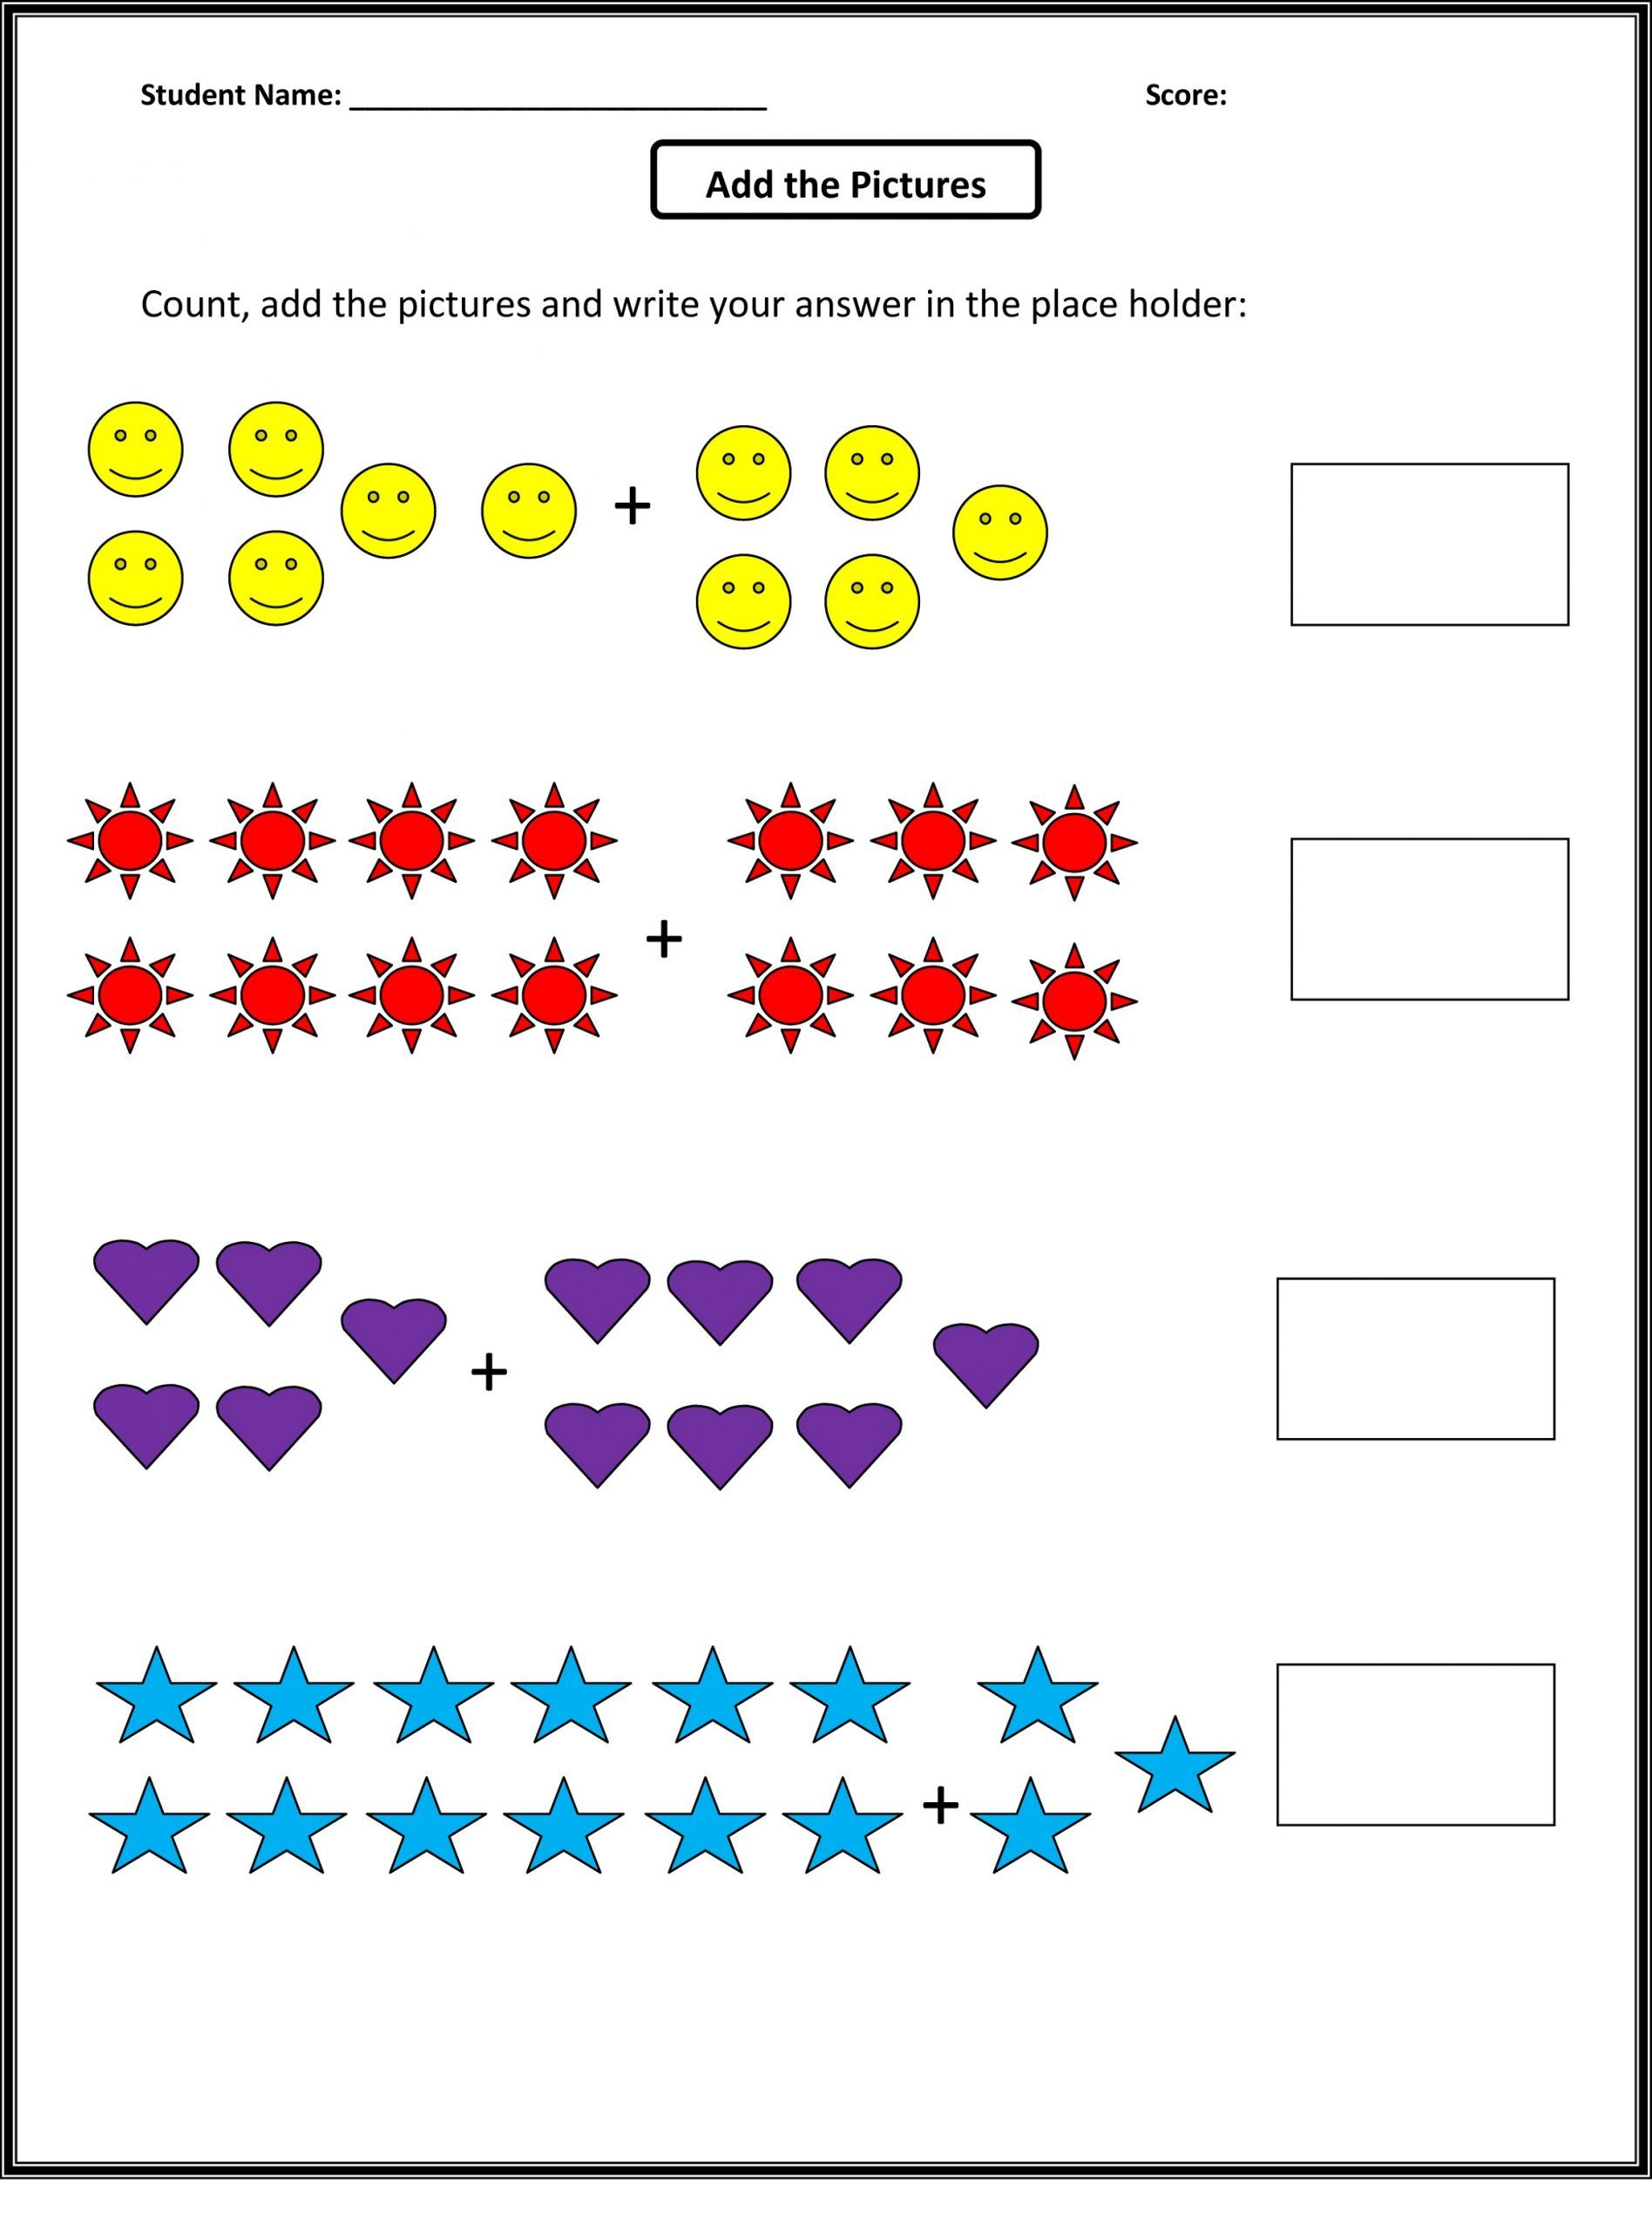 Free Math Worksheets For Grade 1 Review Special Education Worksheets 1st Grade Math Worksheets Fun Math Worksheets